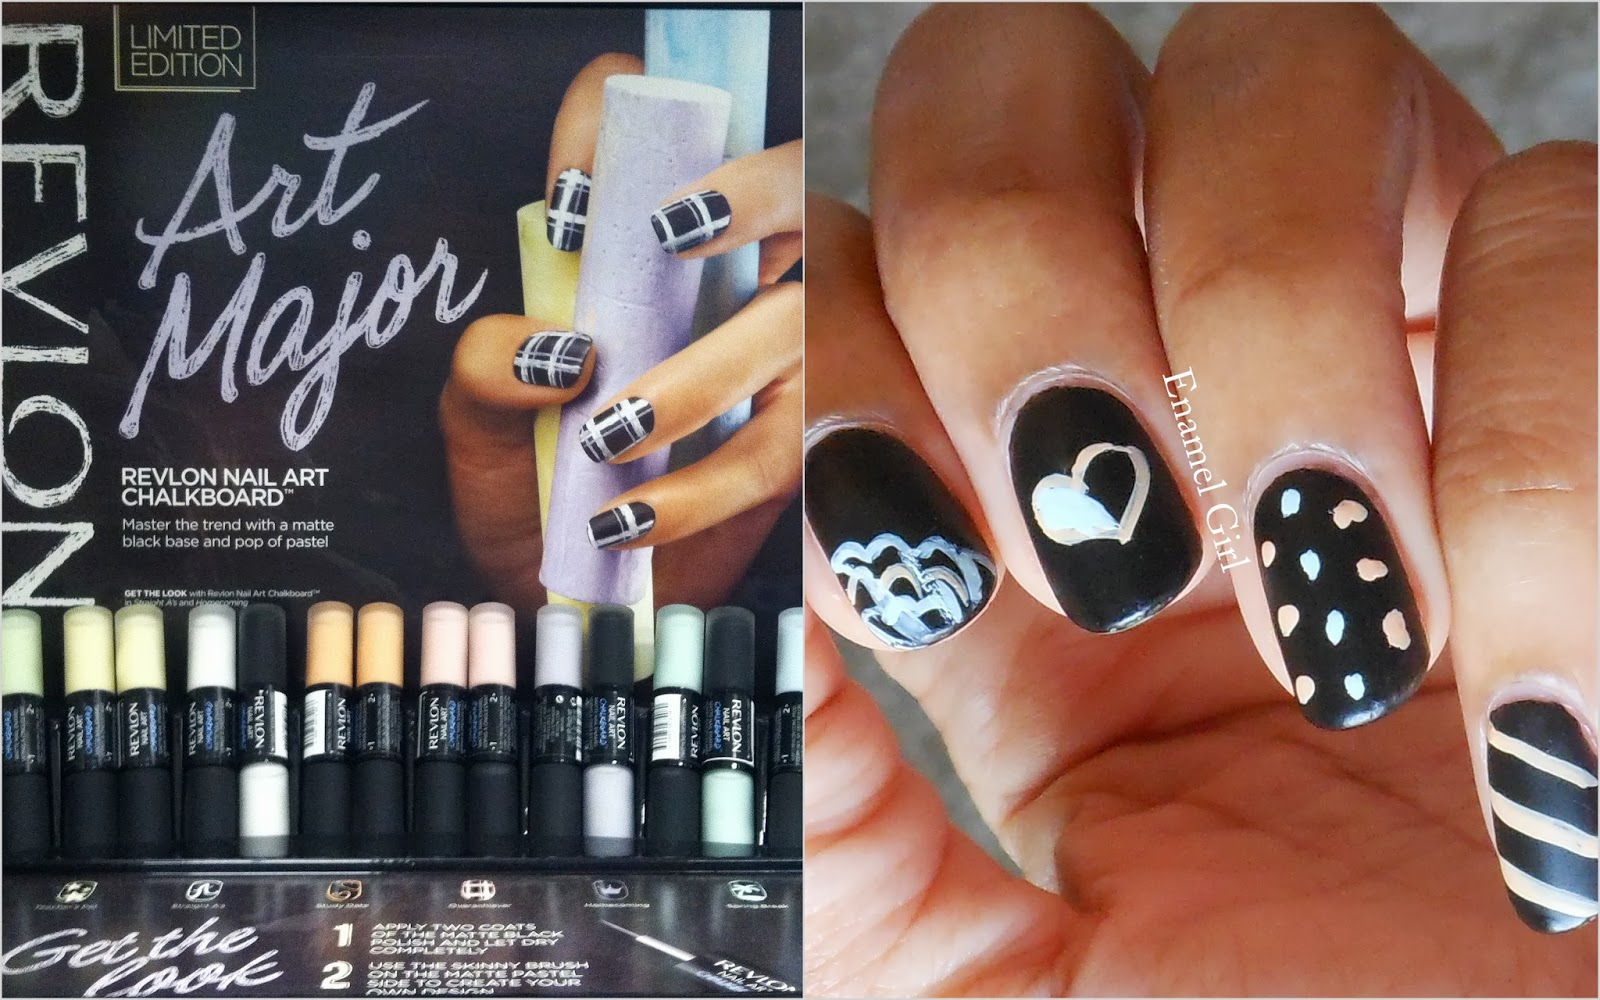 Enamel Girl: Revlon Nail Art Chalkboard Polish - Review ...